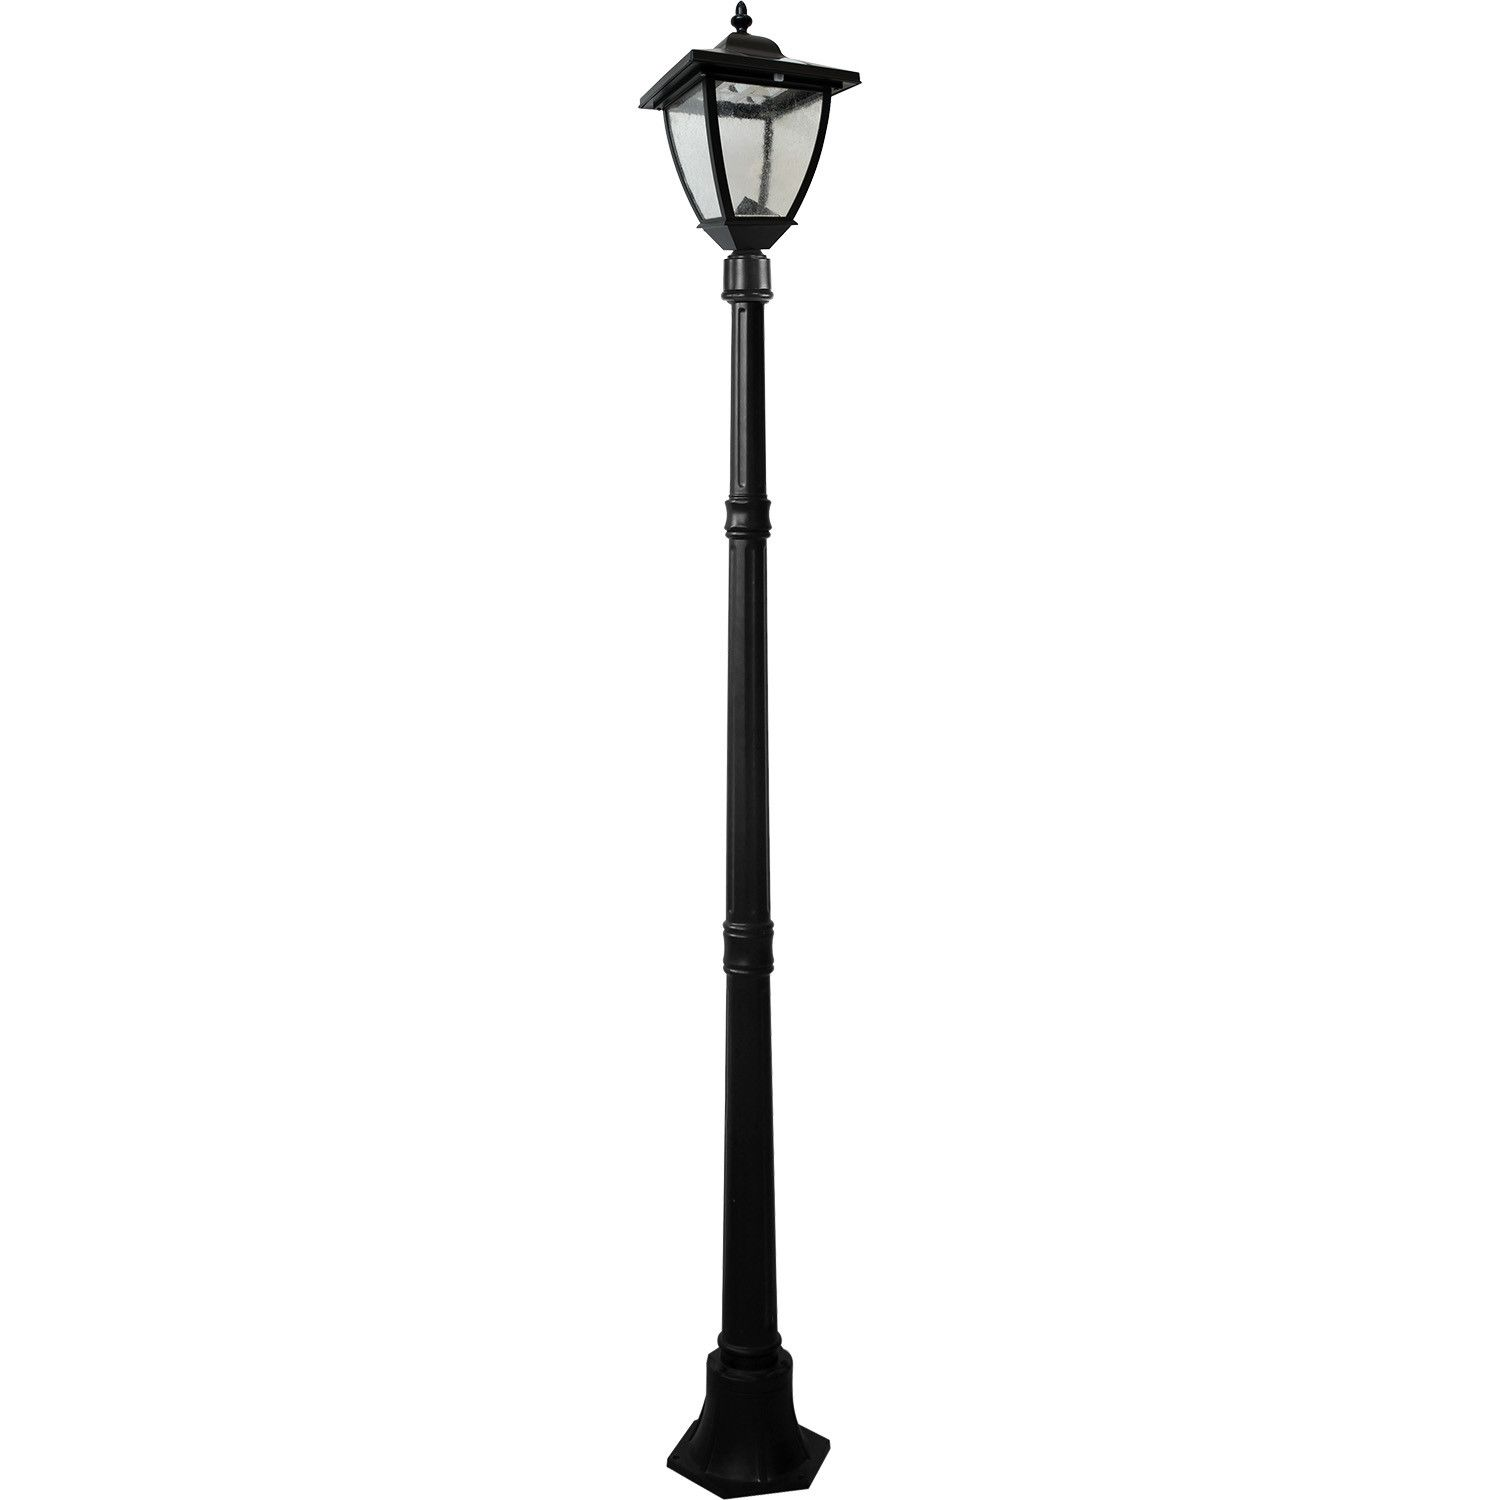 Lovely outdoor lantern pole lights theplanmagazine lovely outdoor lantern pole lights aloadofball Image collections